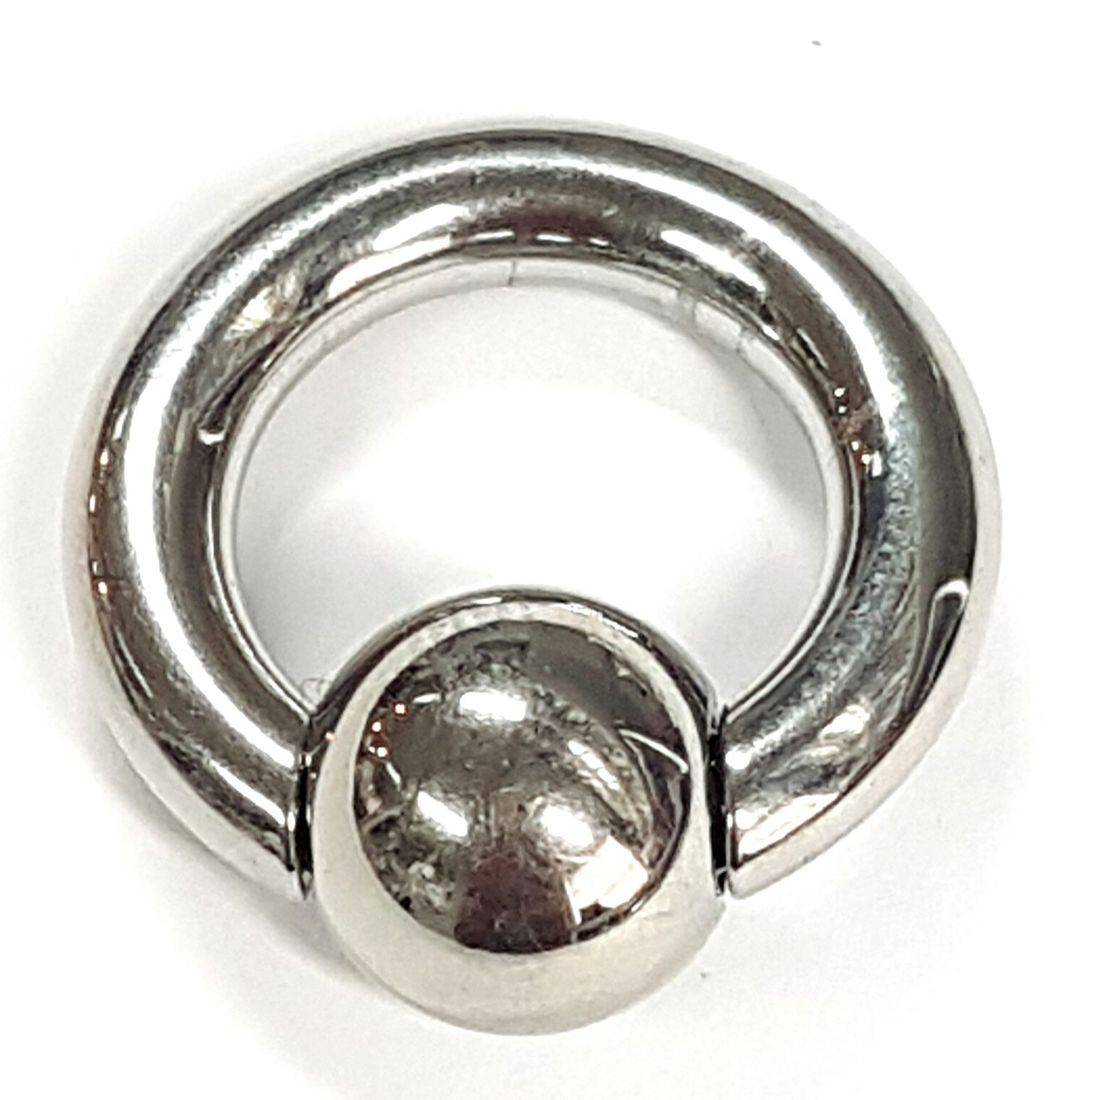 Titanium large gauge body jewellery from Kazbah Leicester and Kazbah Online